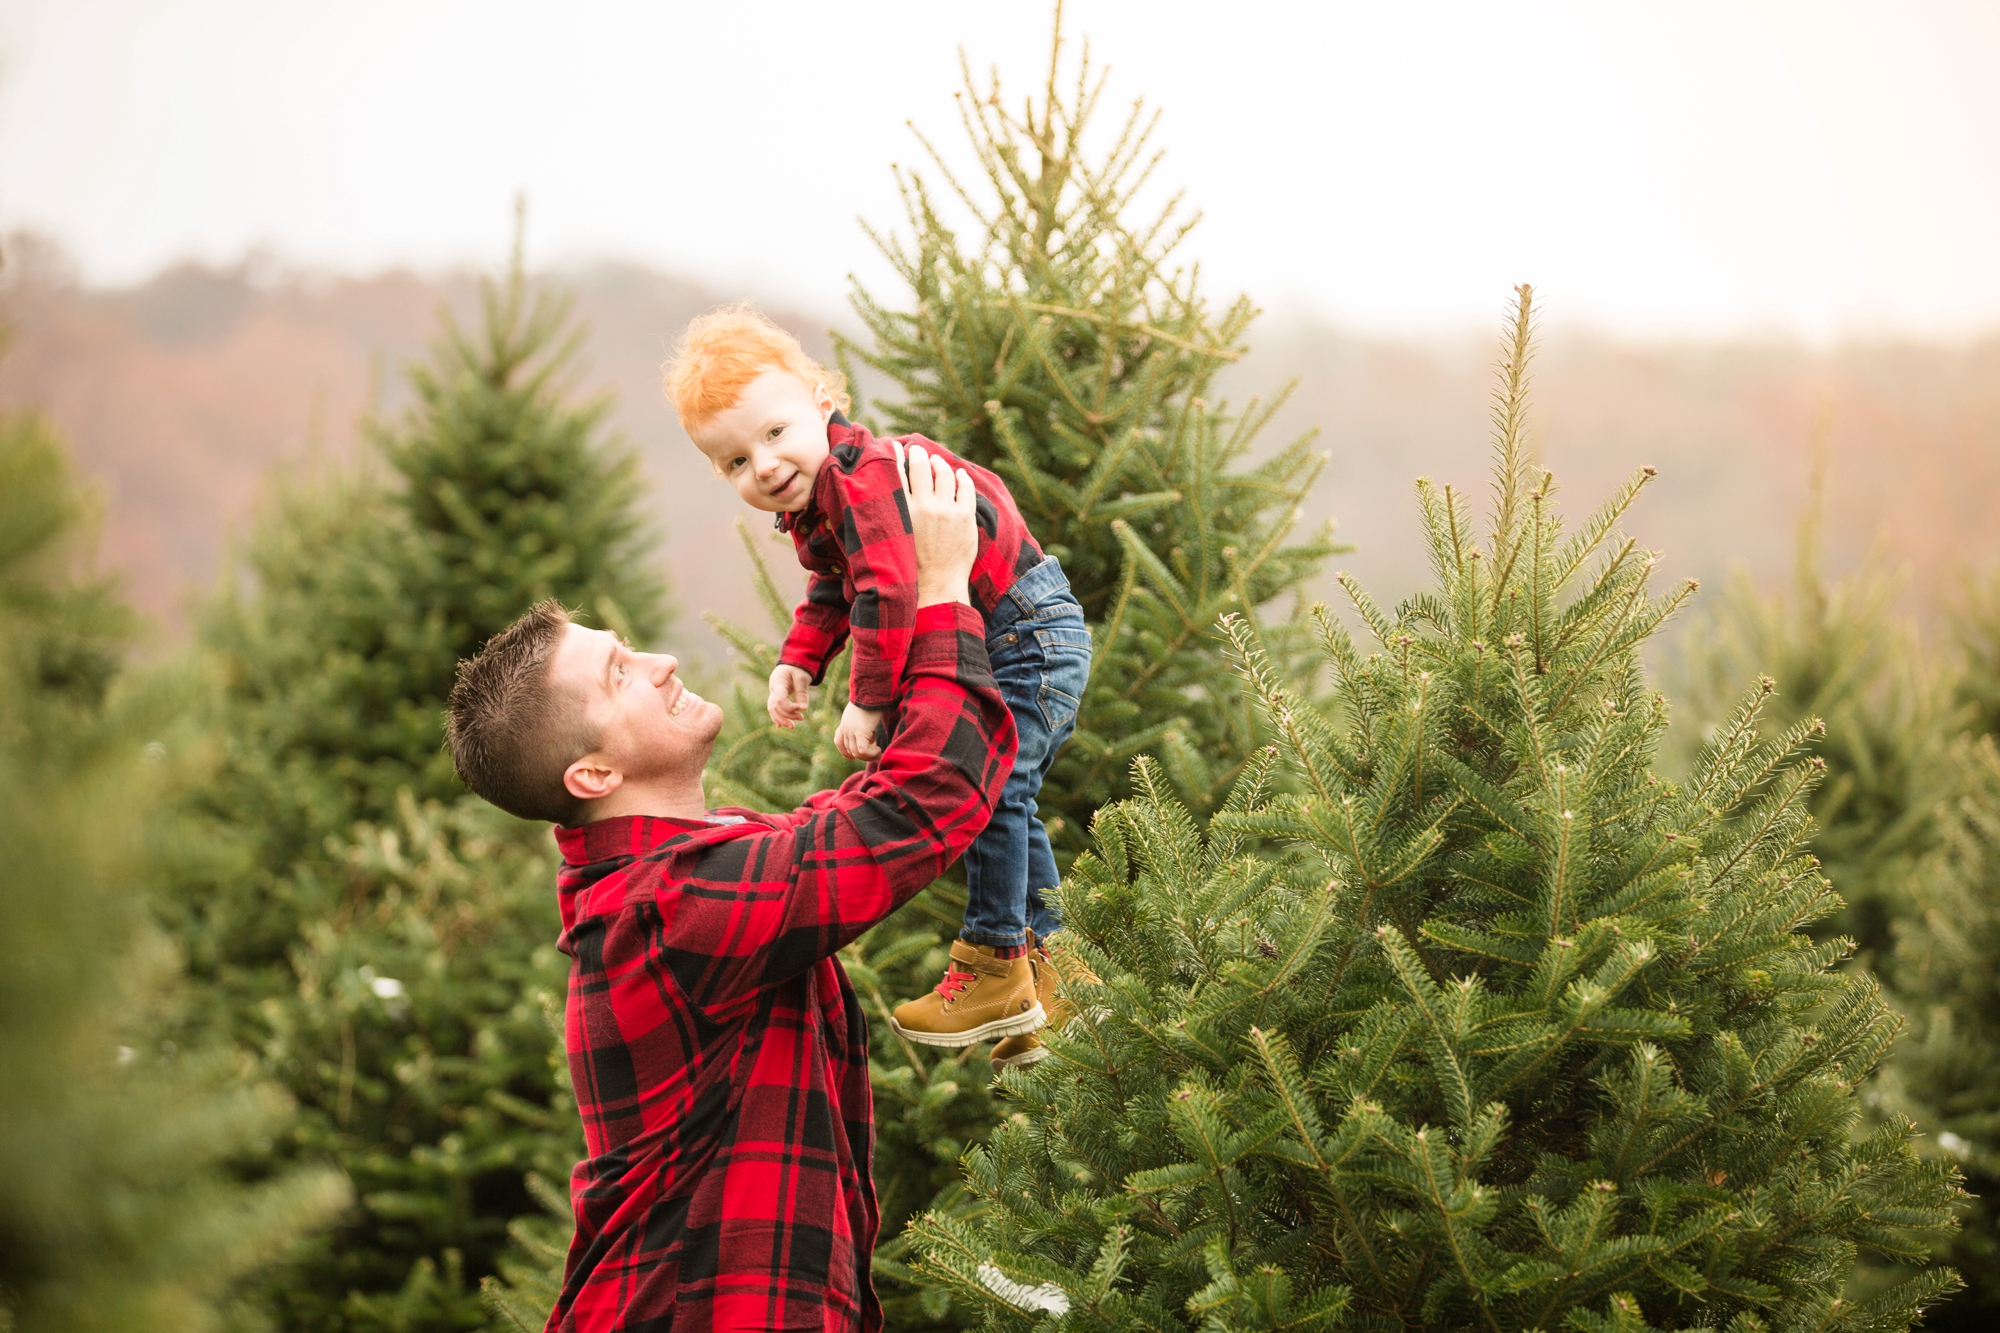 best places to take pictures in pittsburgh, cool places to take pictures in pittsburgh, lake forest gardens, pittsburgh family photographer, christmas tree farm pittsburgh